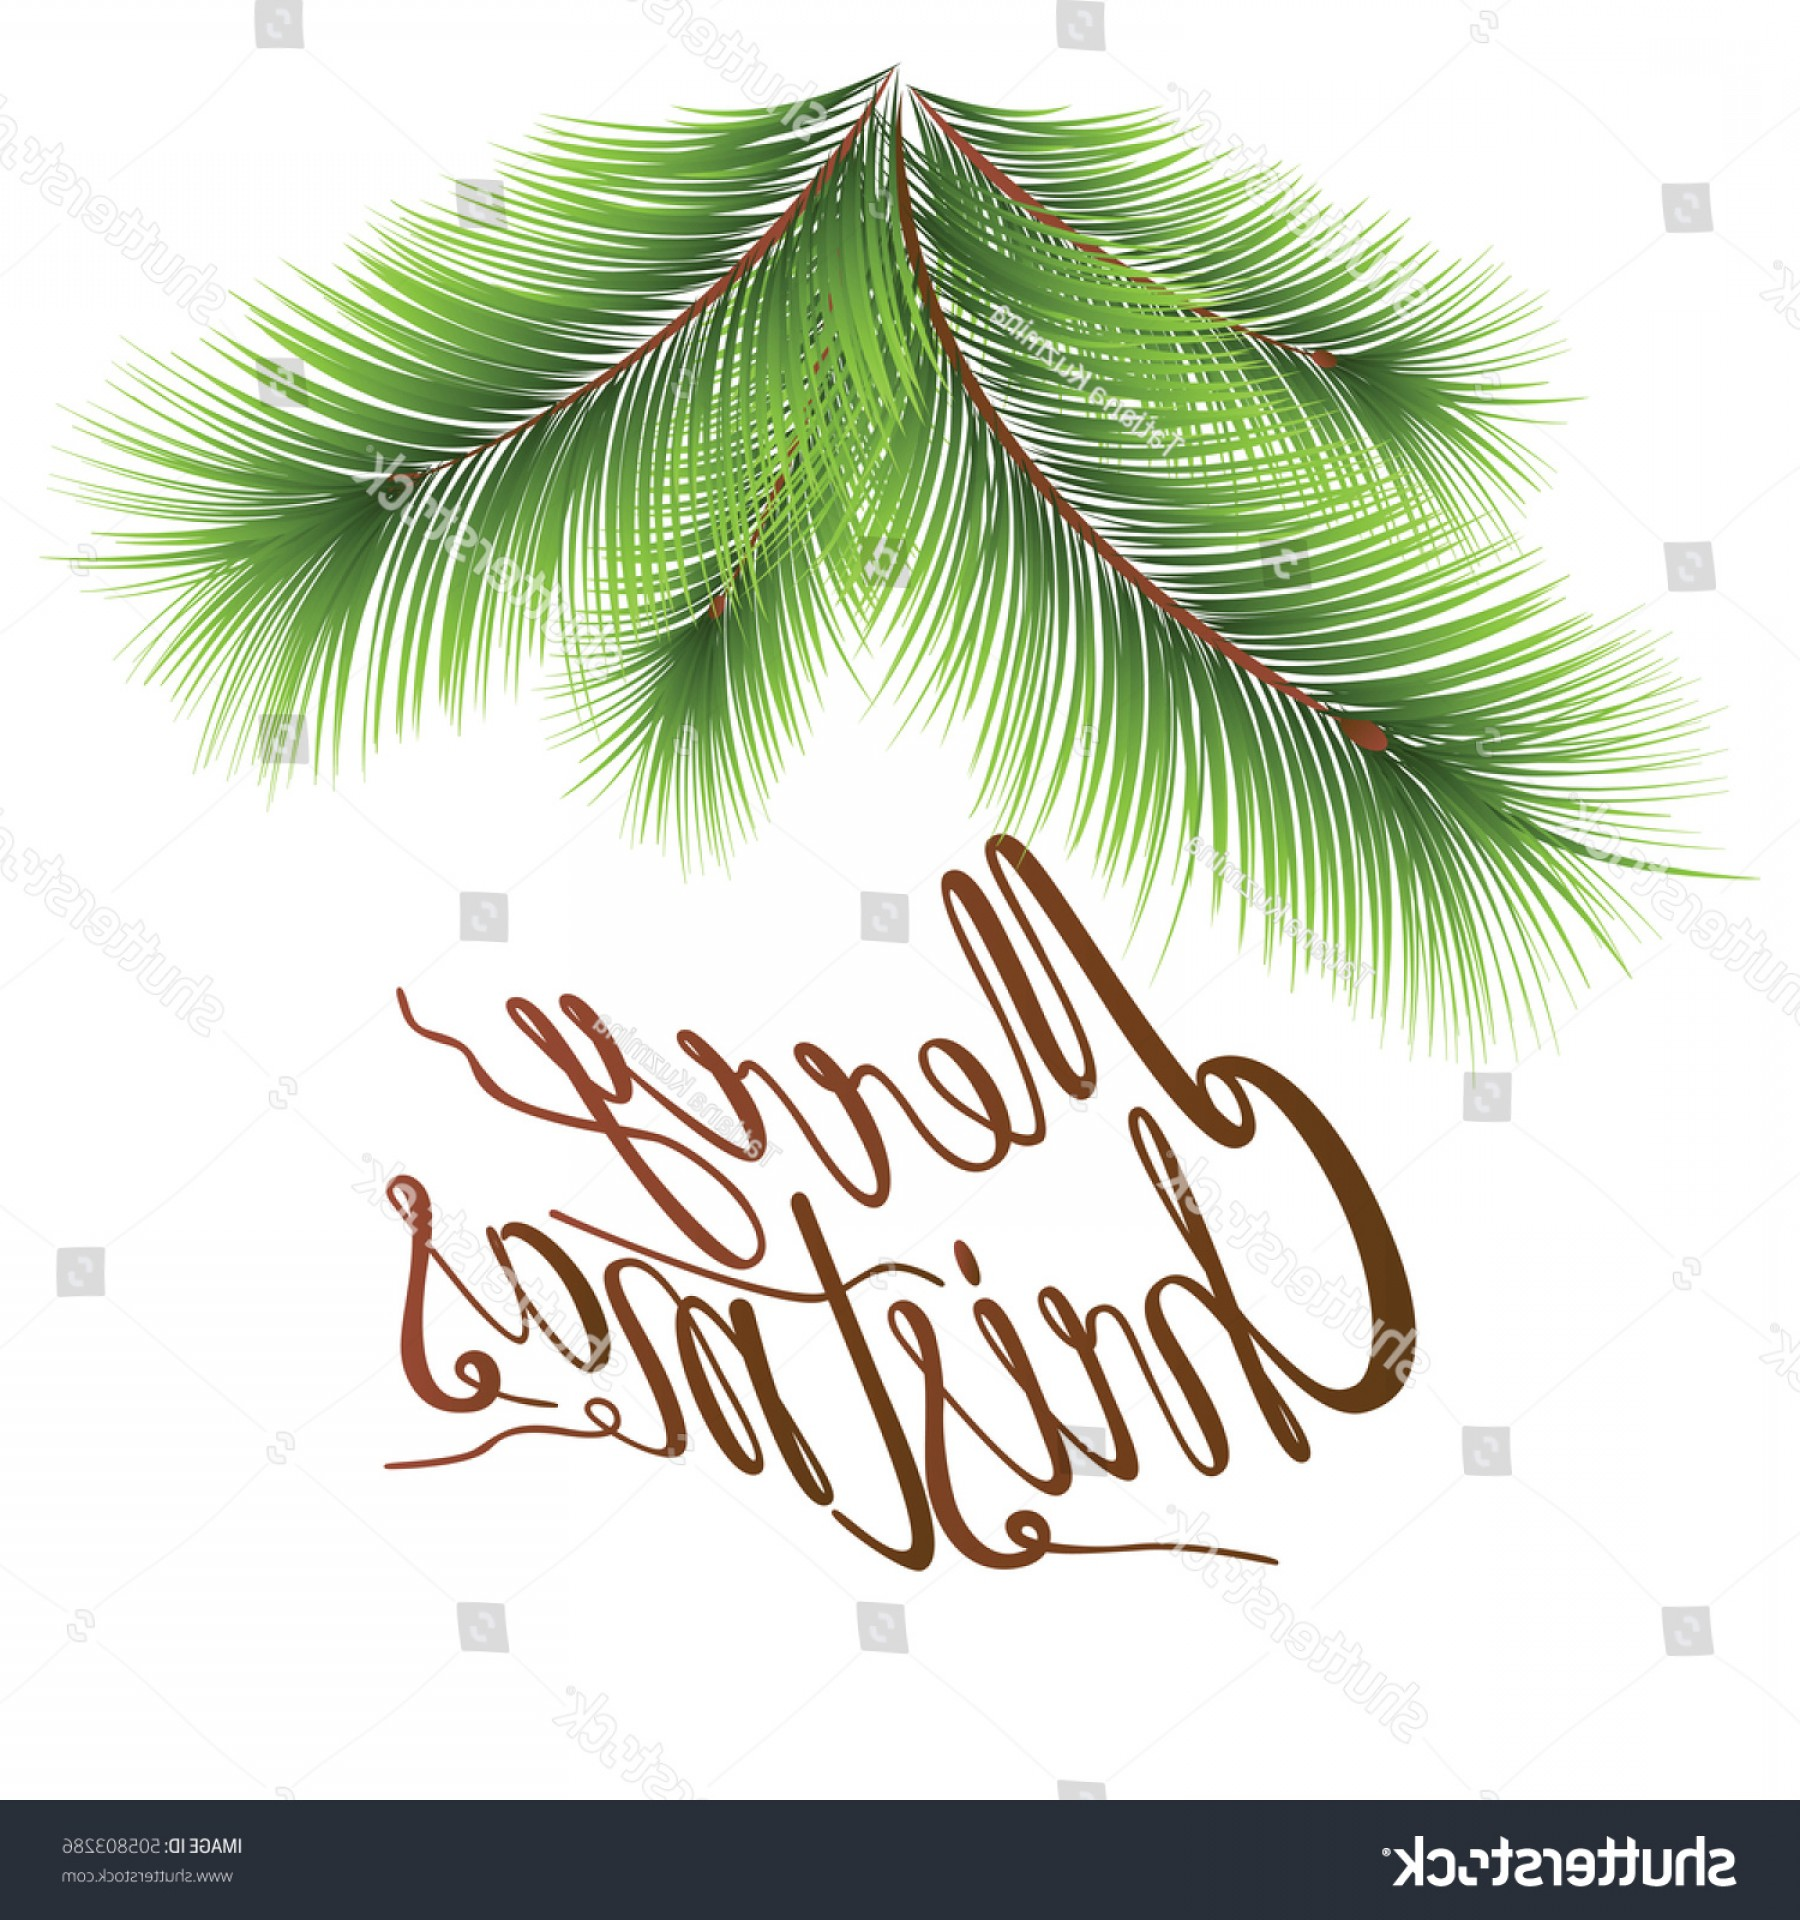 Christmas Vector Sayingd: Christmas Tree Branches Image Lettering Design